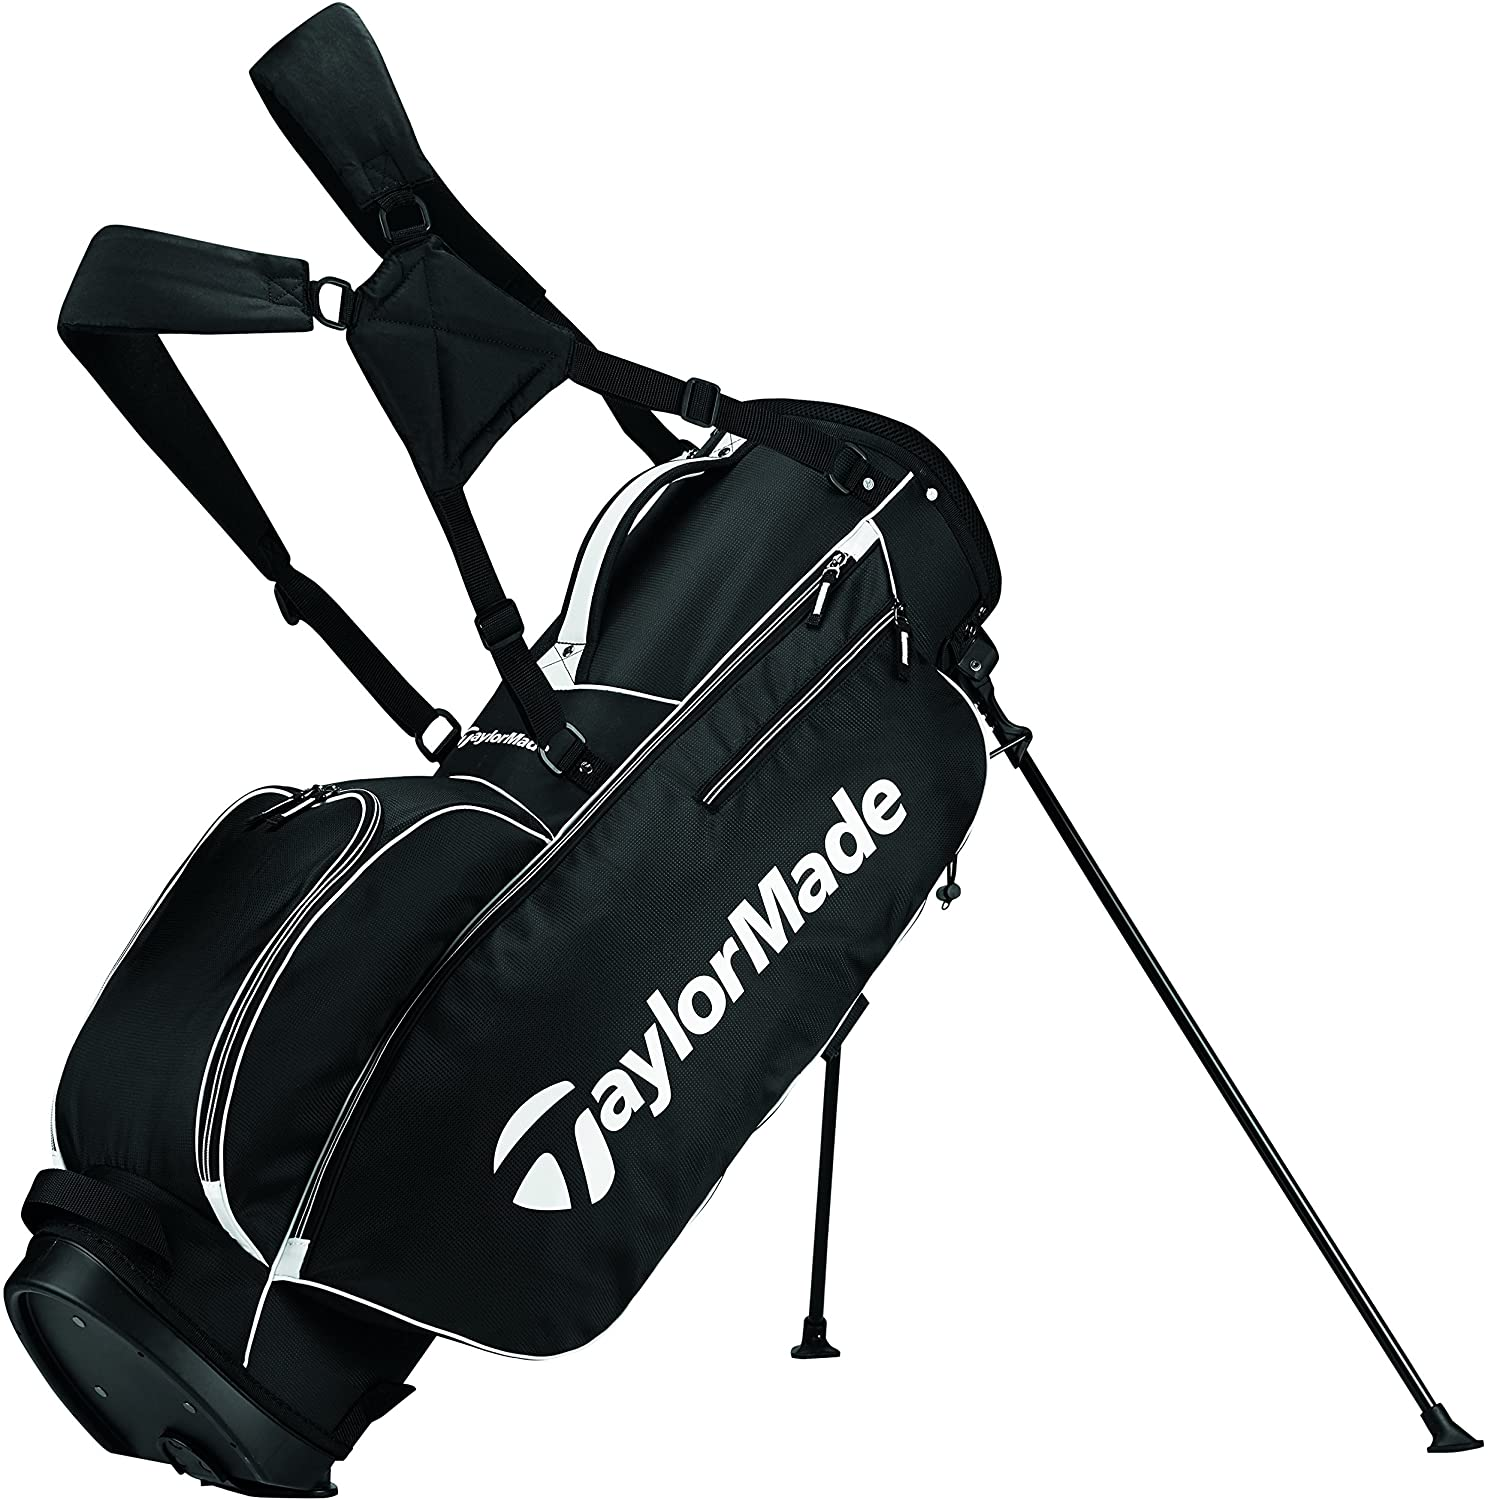 TaylorMade 5.0